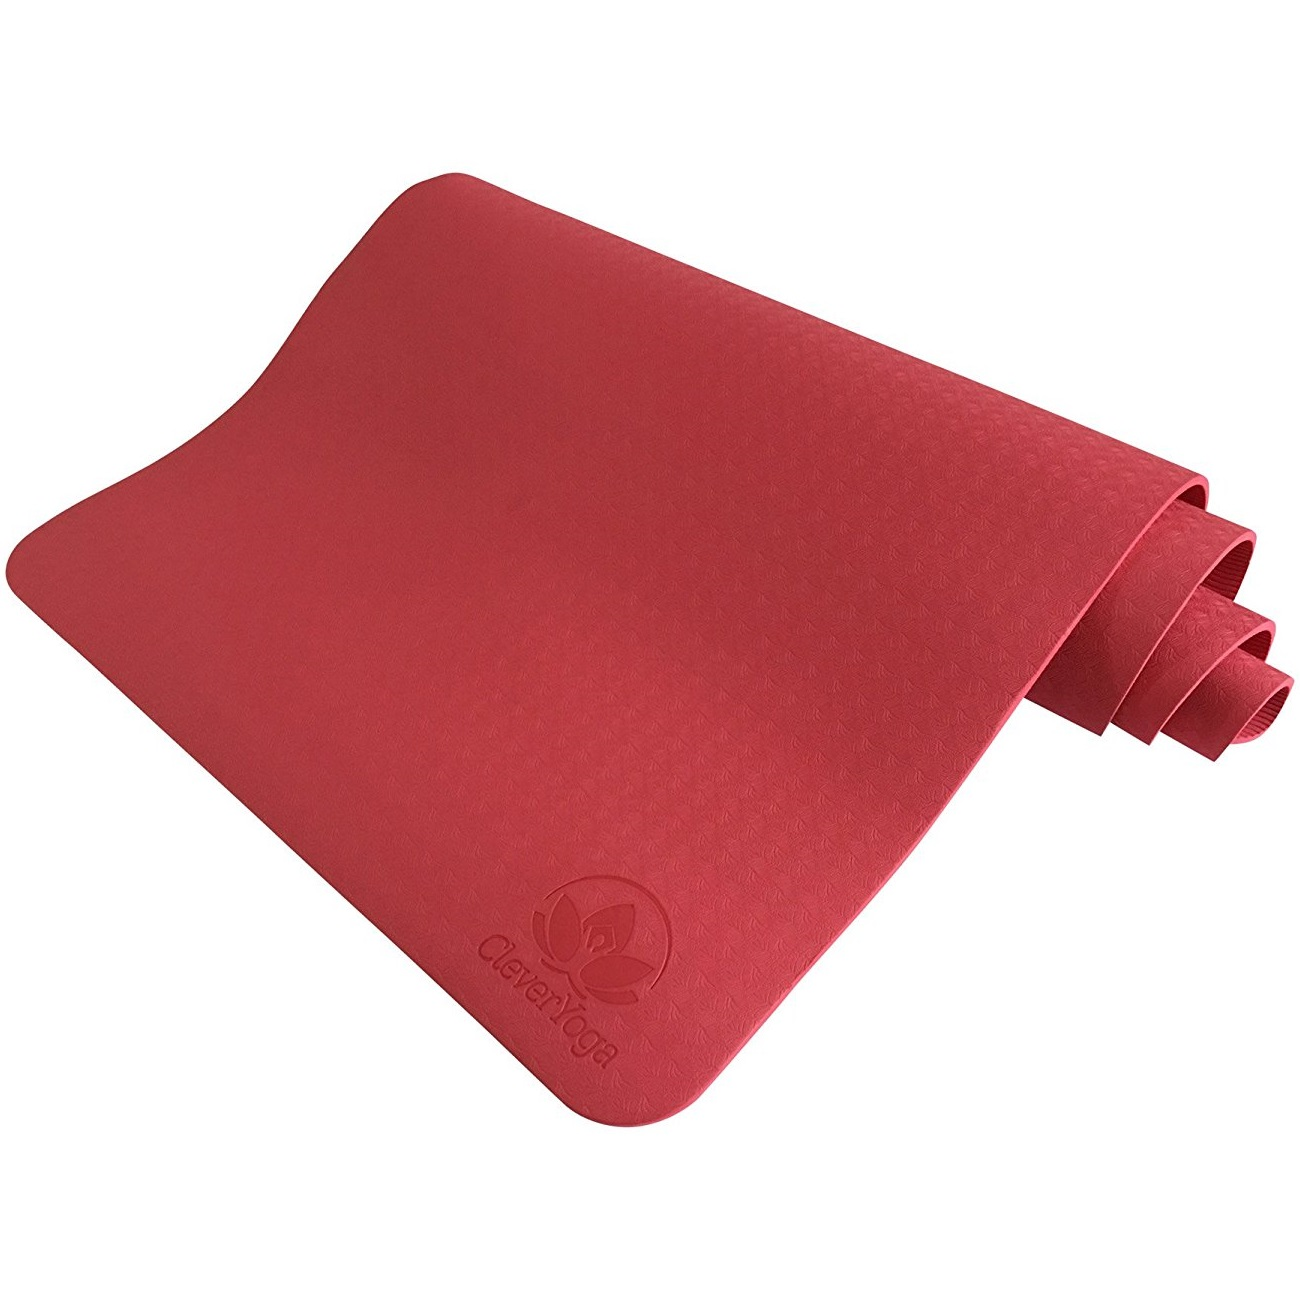 "clever yoga premium bettergrip tpe 1/4"" thick rose red yoga mat"